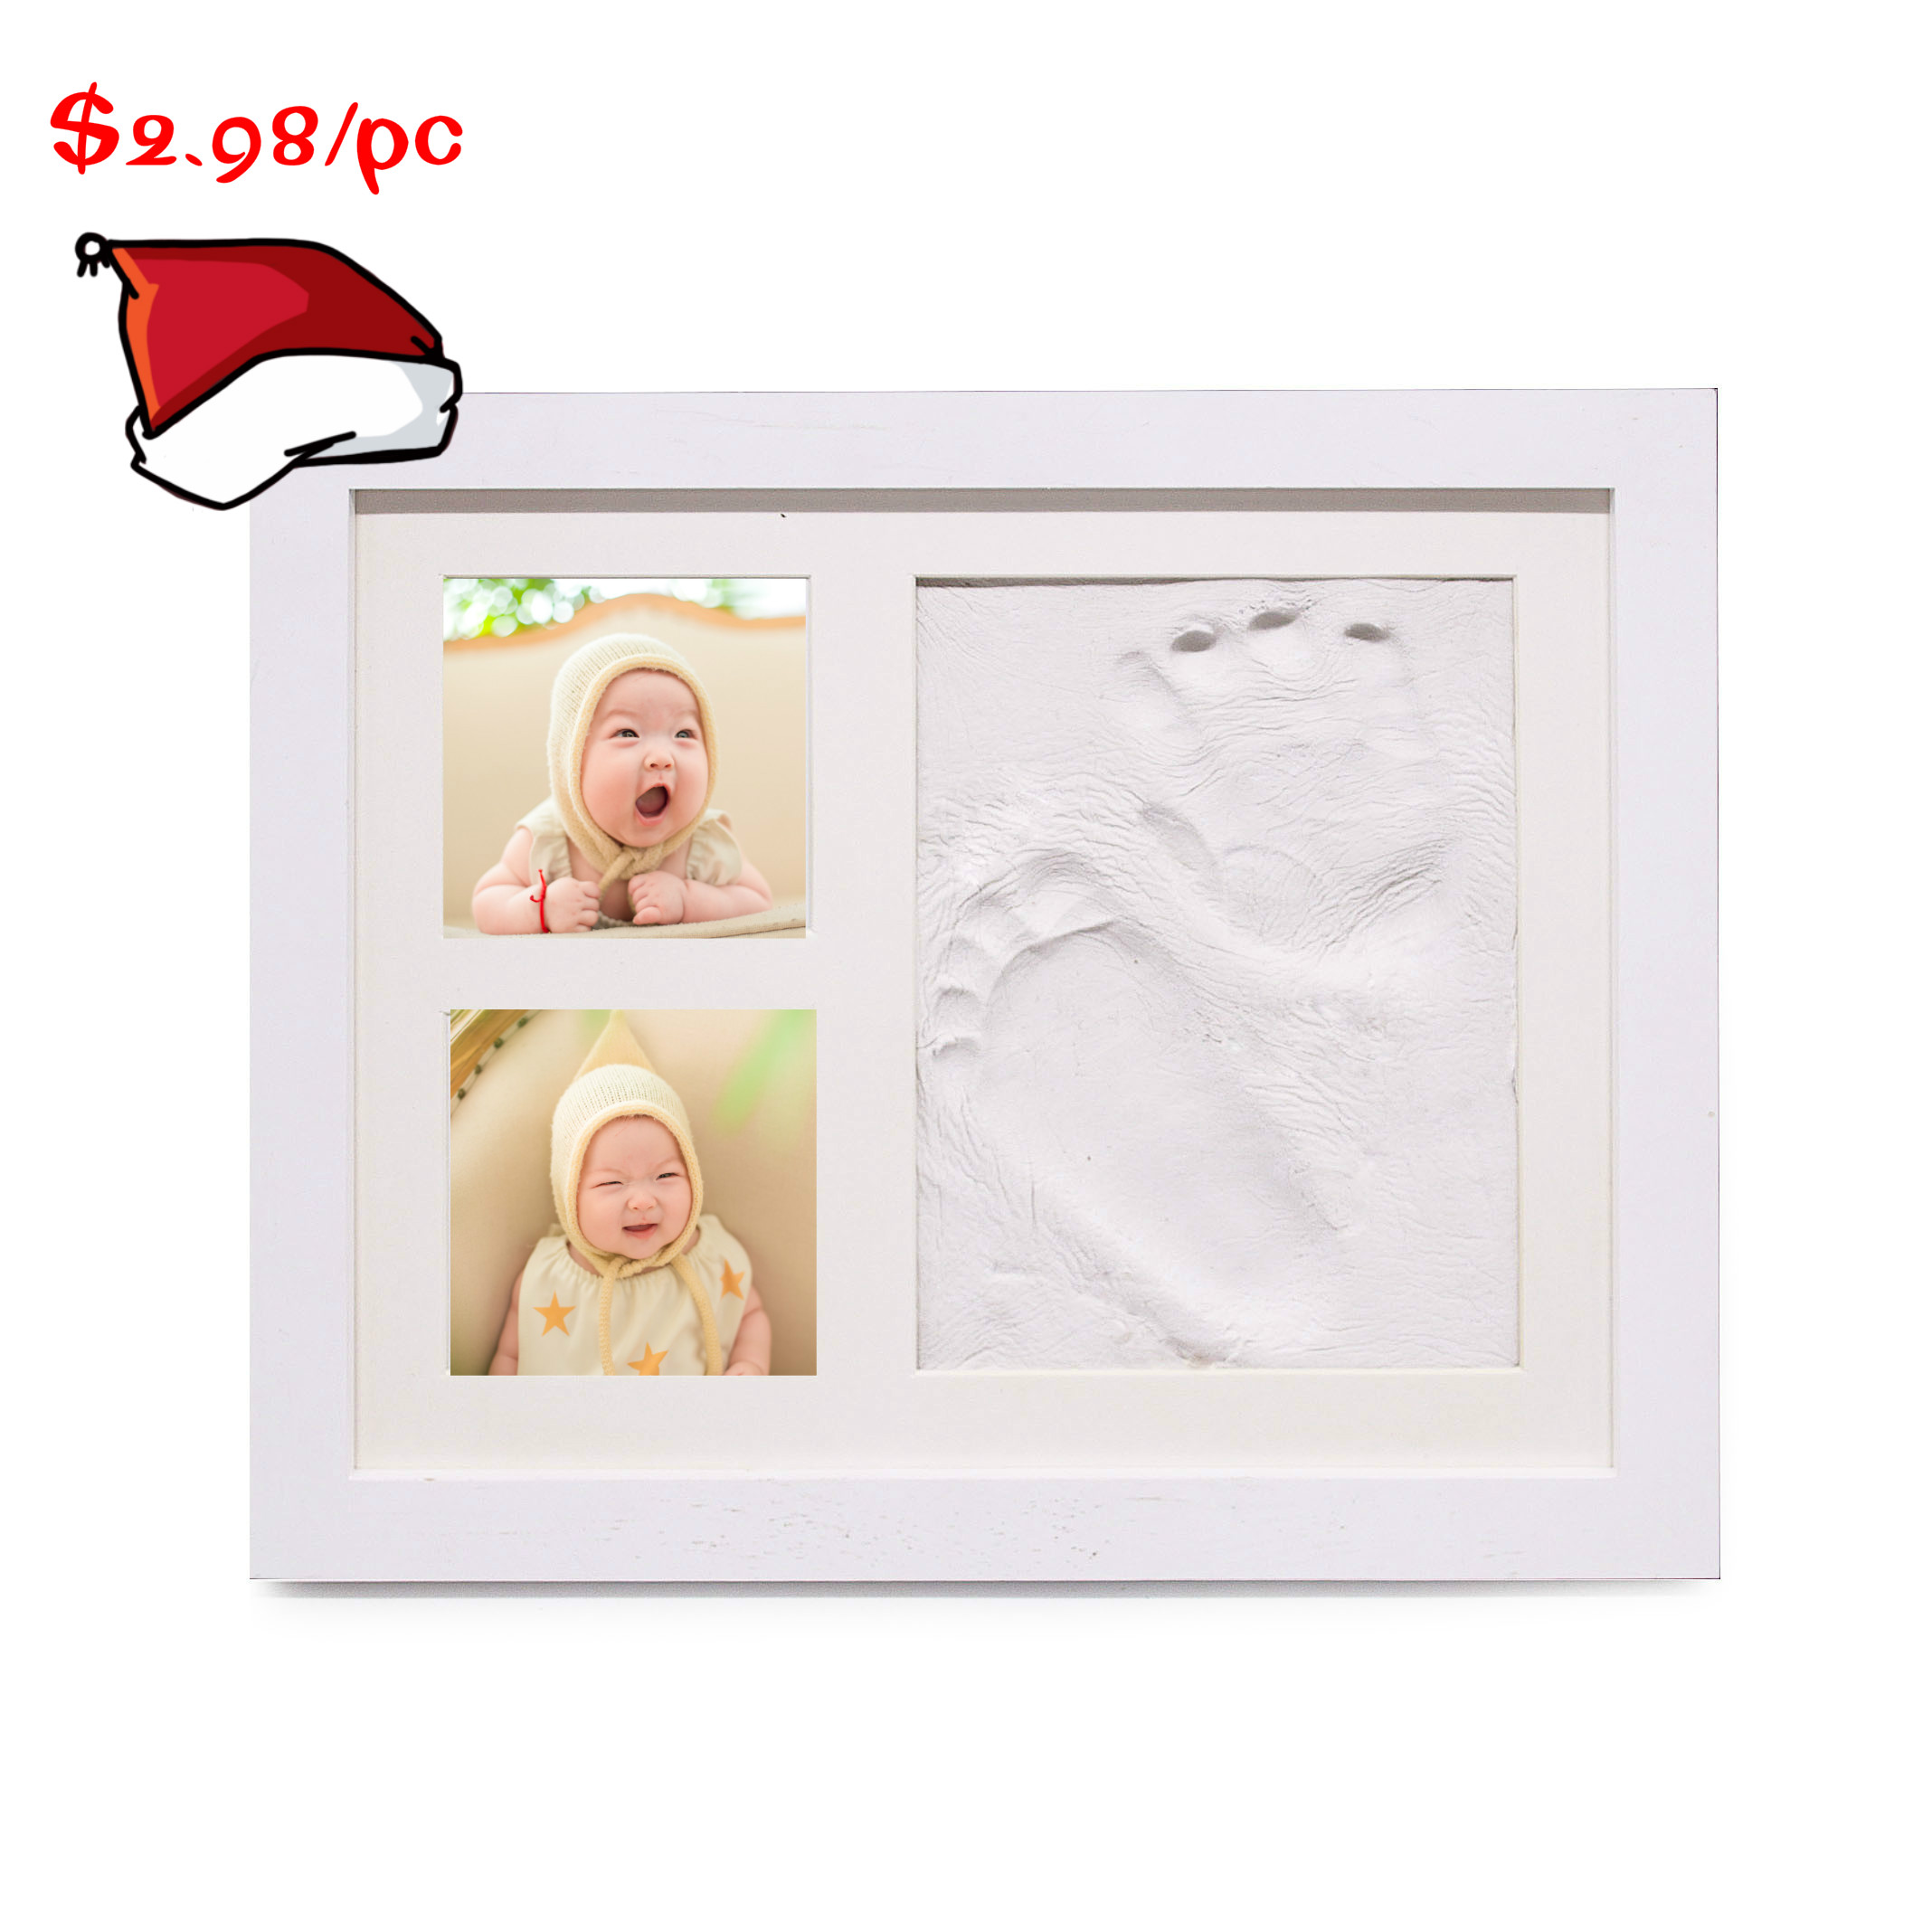 Amazon BABY HAND & FOOTPRINT PICTURE FRAME KIT for Boys and Girls